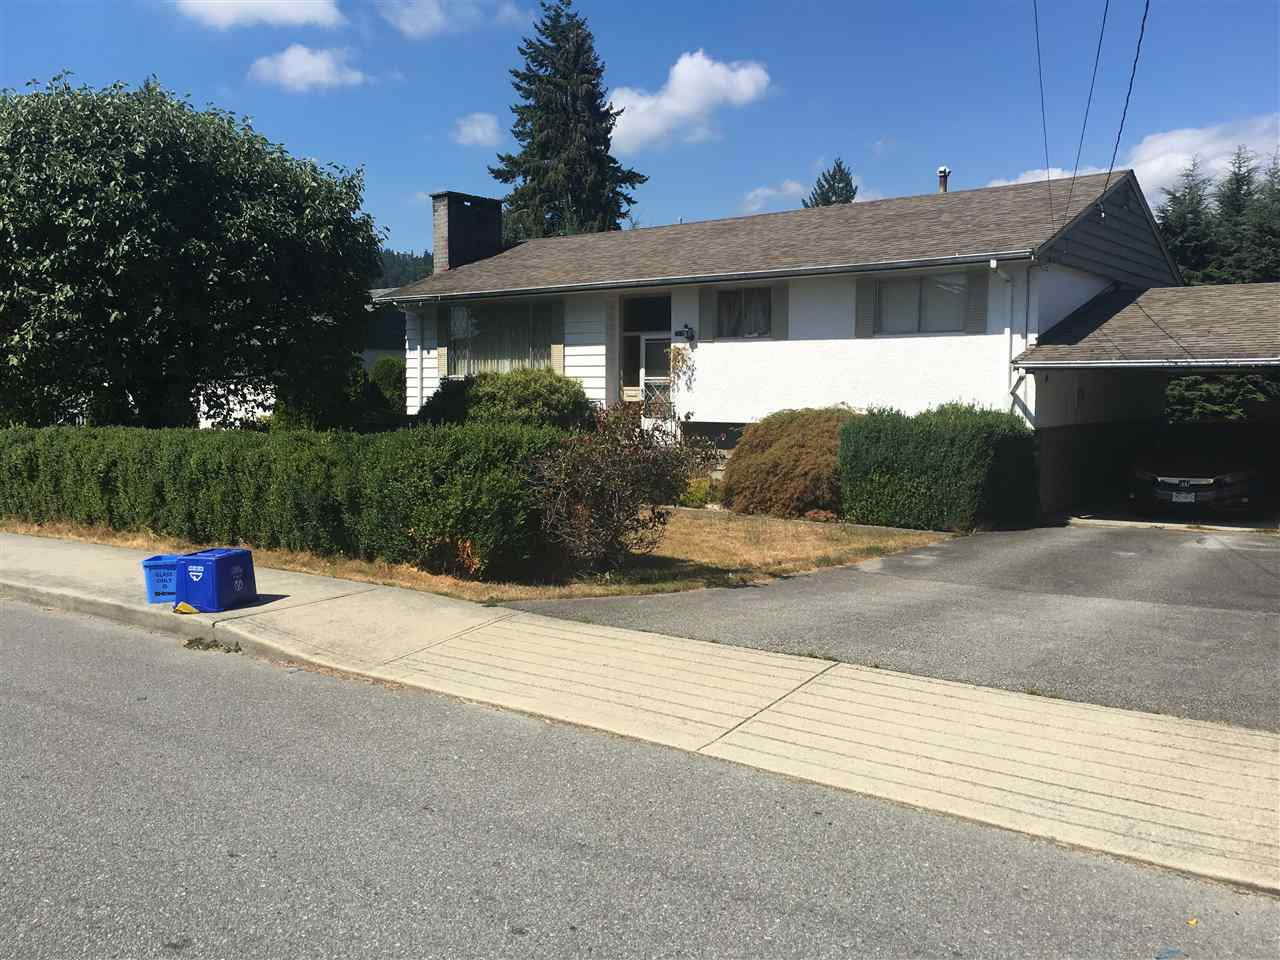 Main Photo: 711 MORRISON Avenue in Coquitlam: Coquitlam West House for sale : MLS® # R2199656